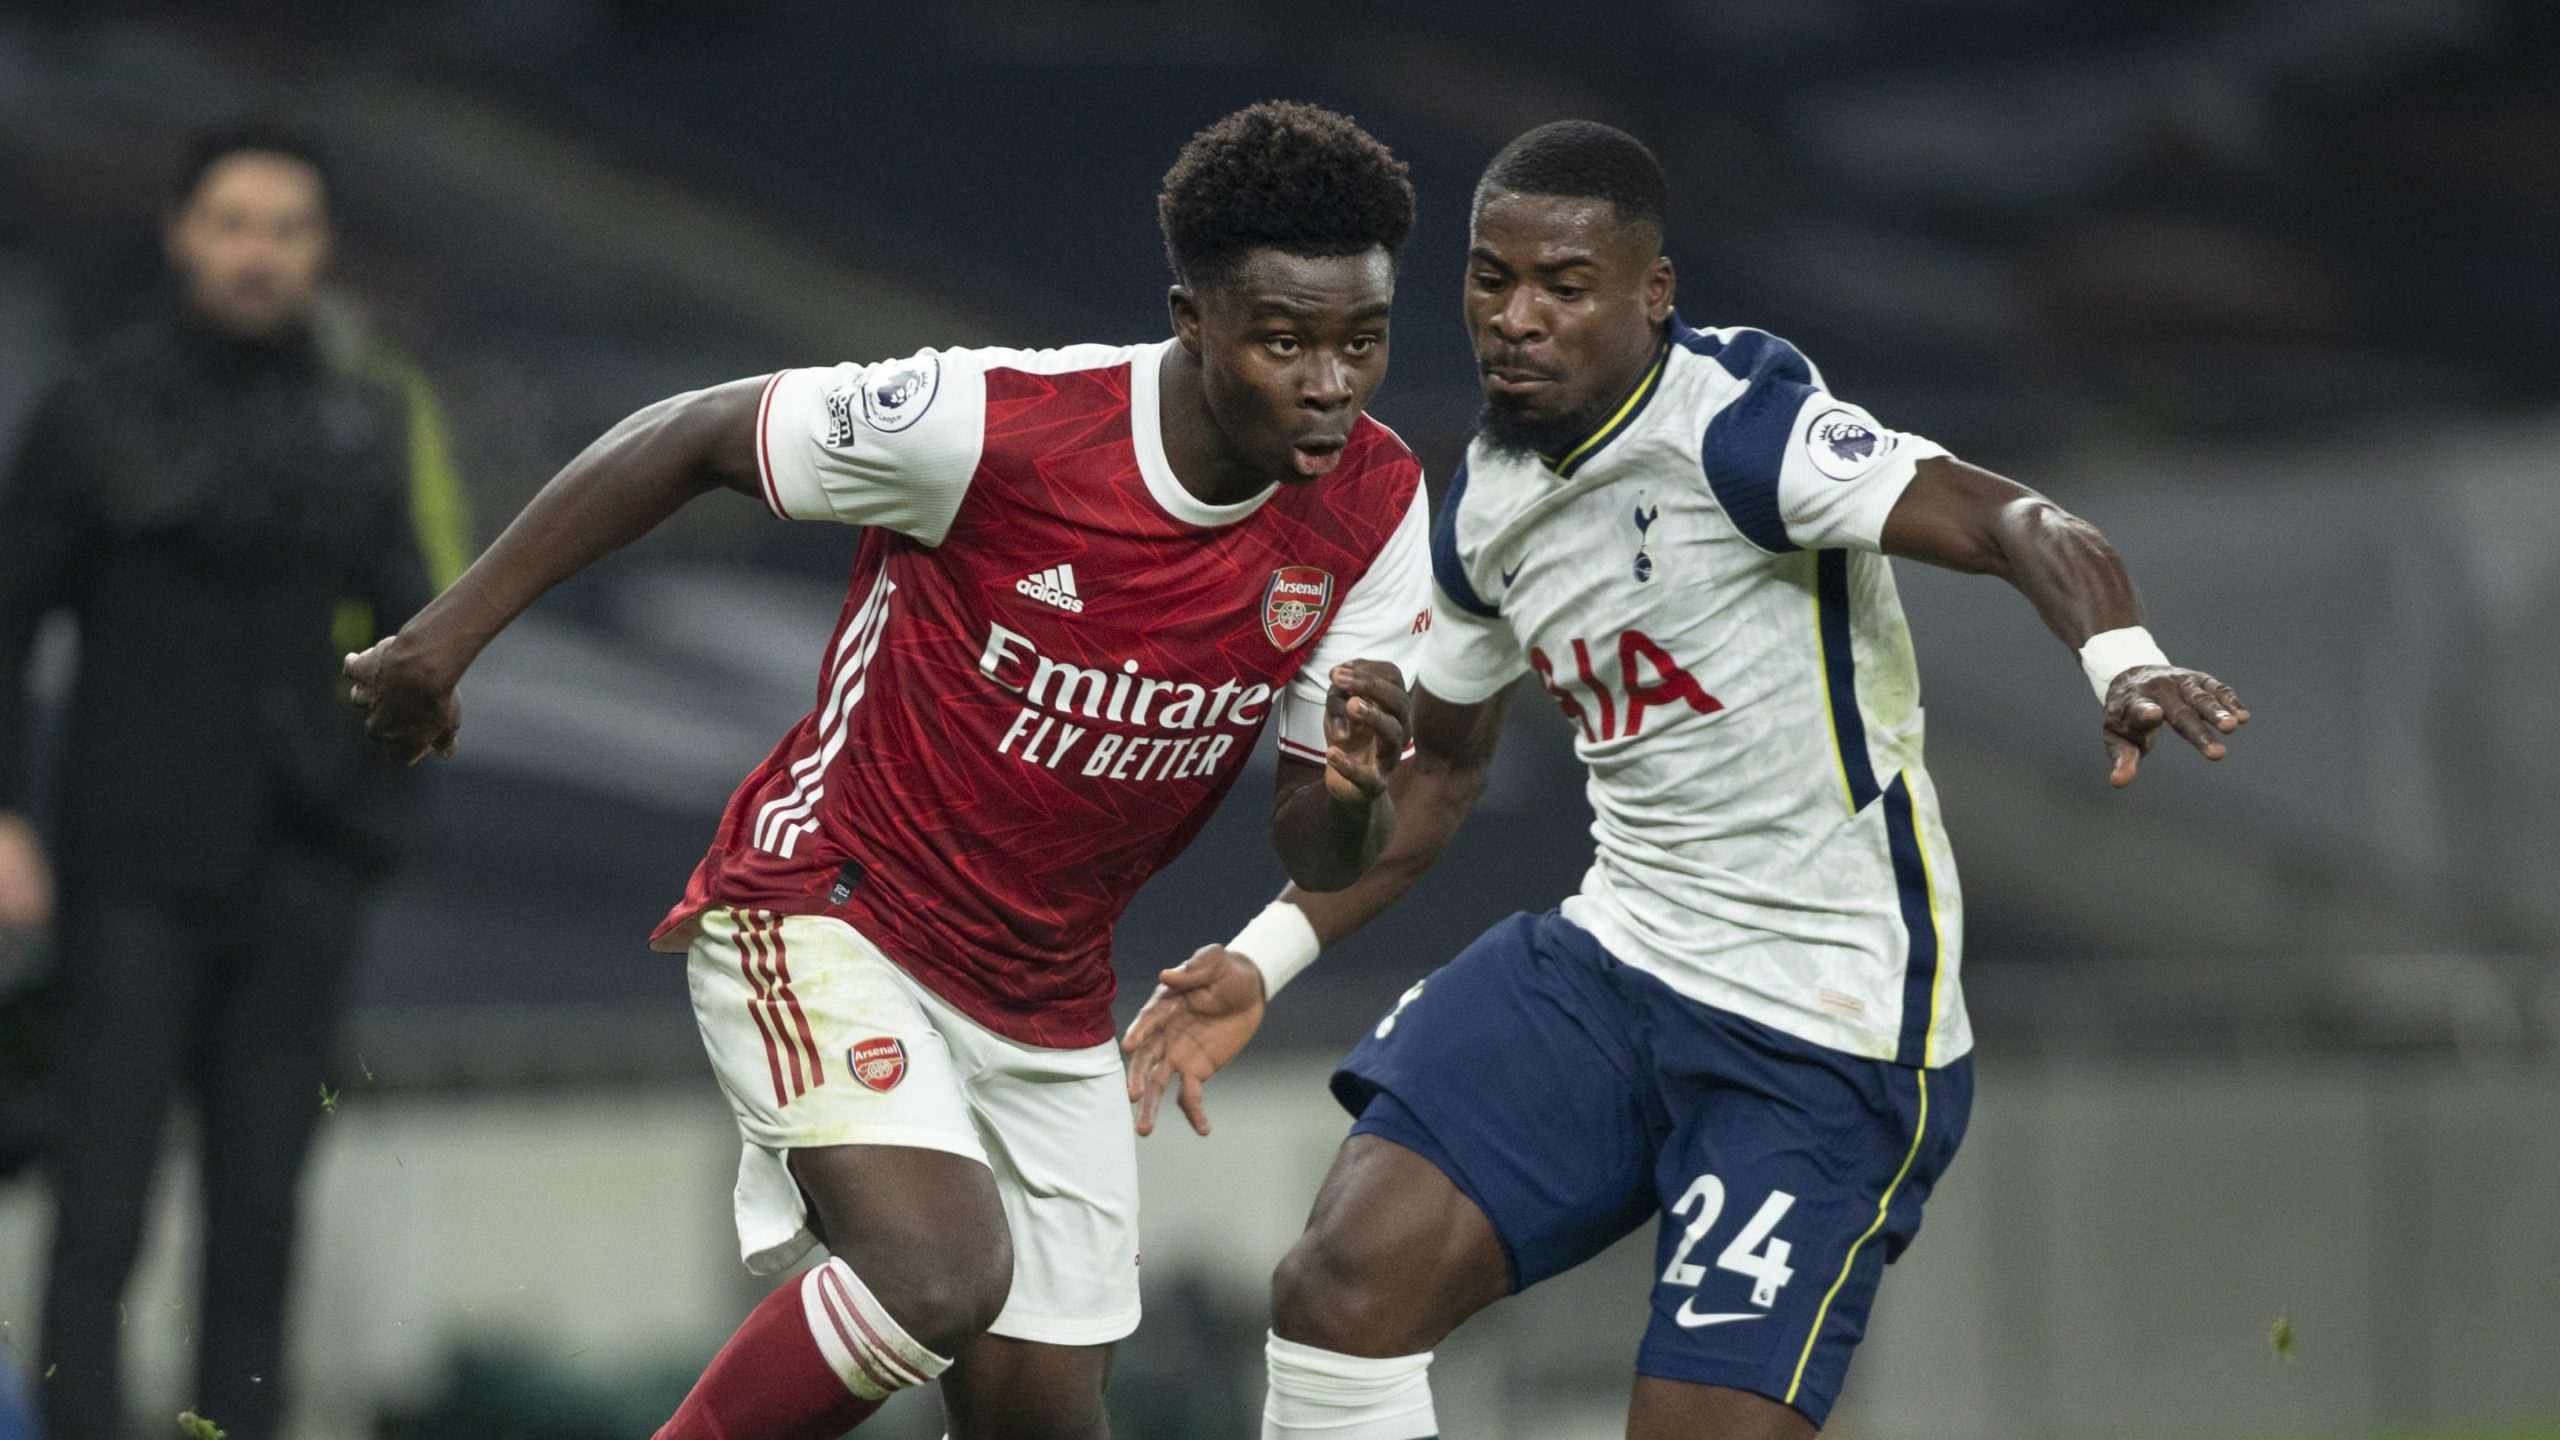 arsenal-vs-tottenham-preview-easy-the-trend-to-seem-on-tv-are-dwelling-saunter-team-news-and-prediction.jpg